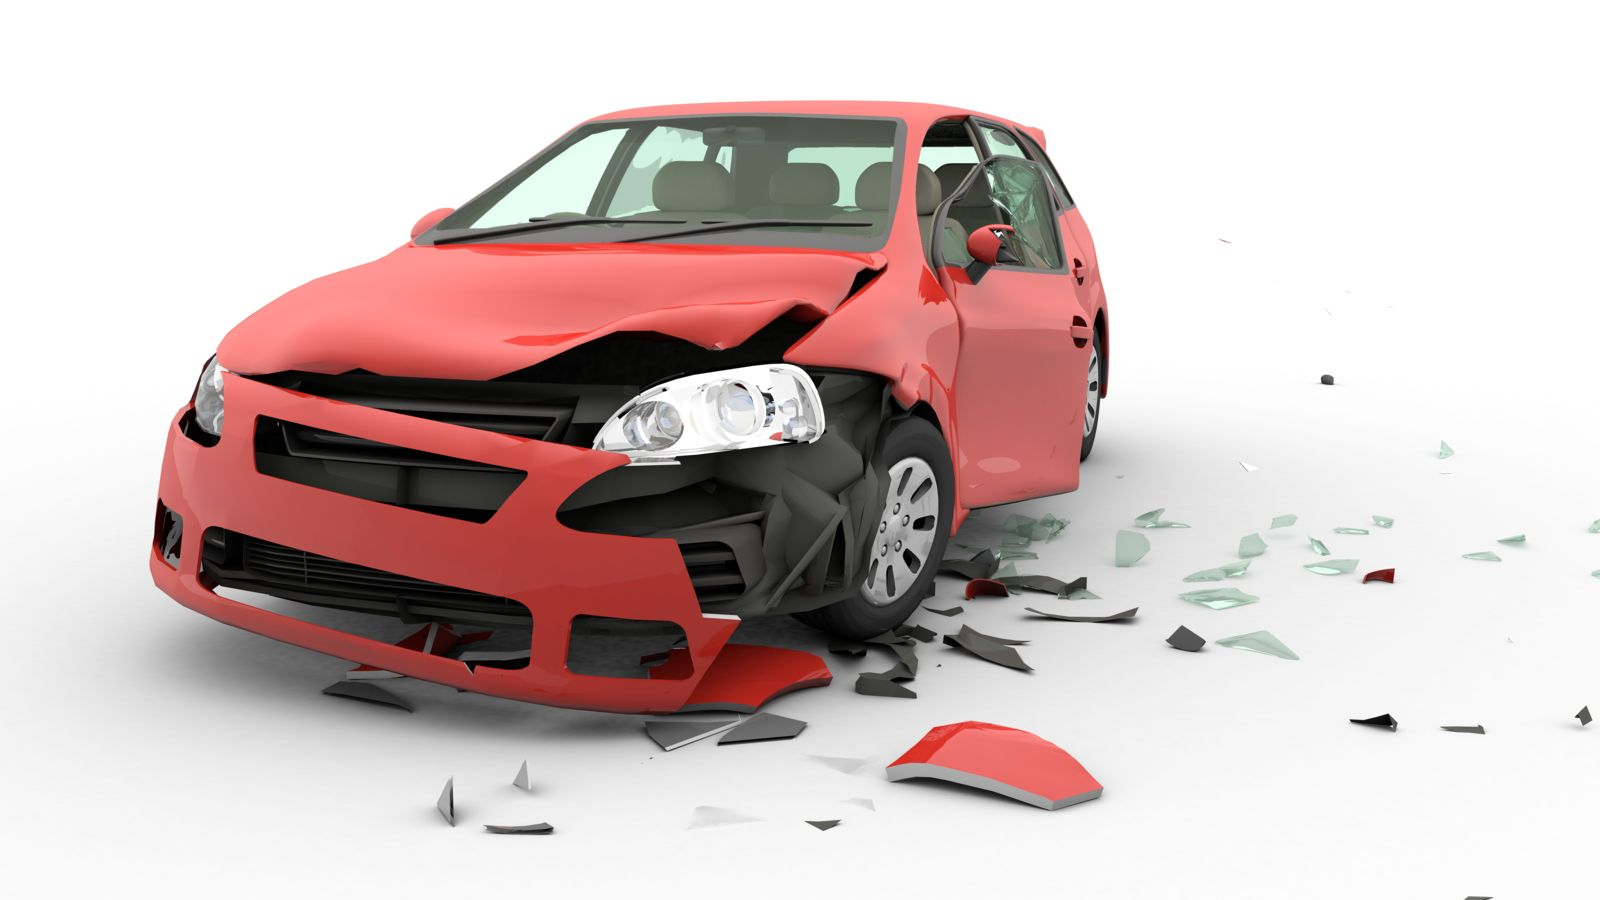 Renton motor vehicle accident lawyer.